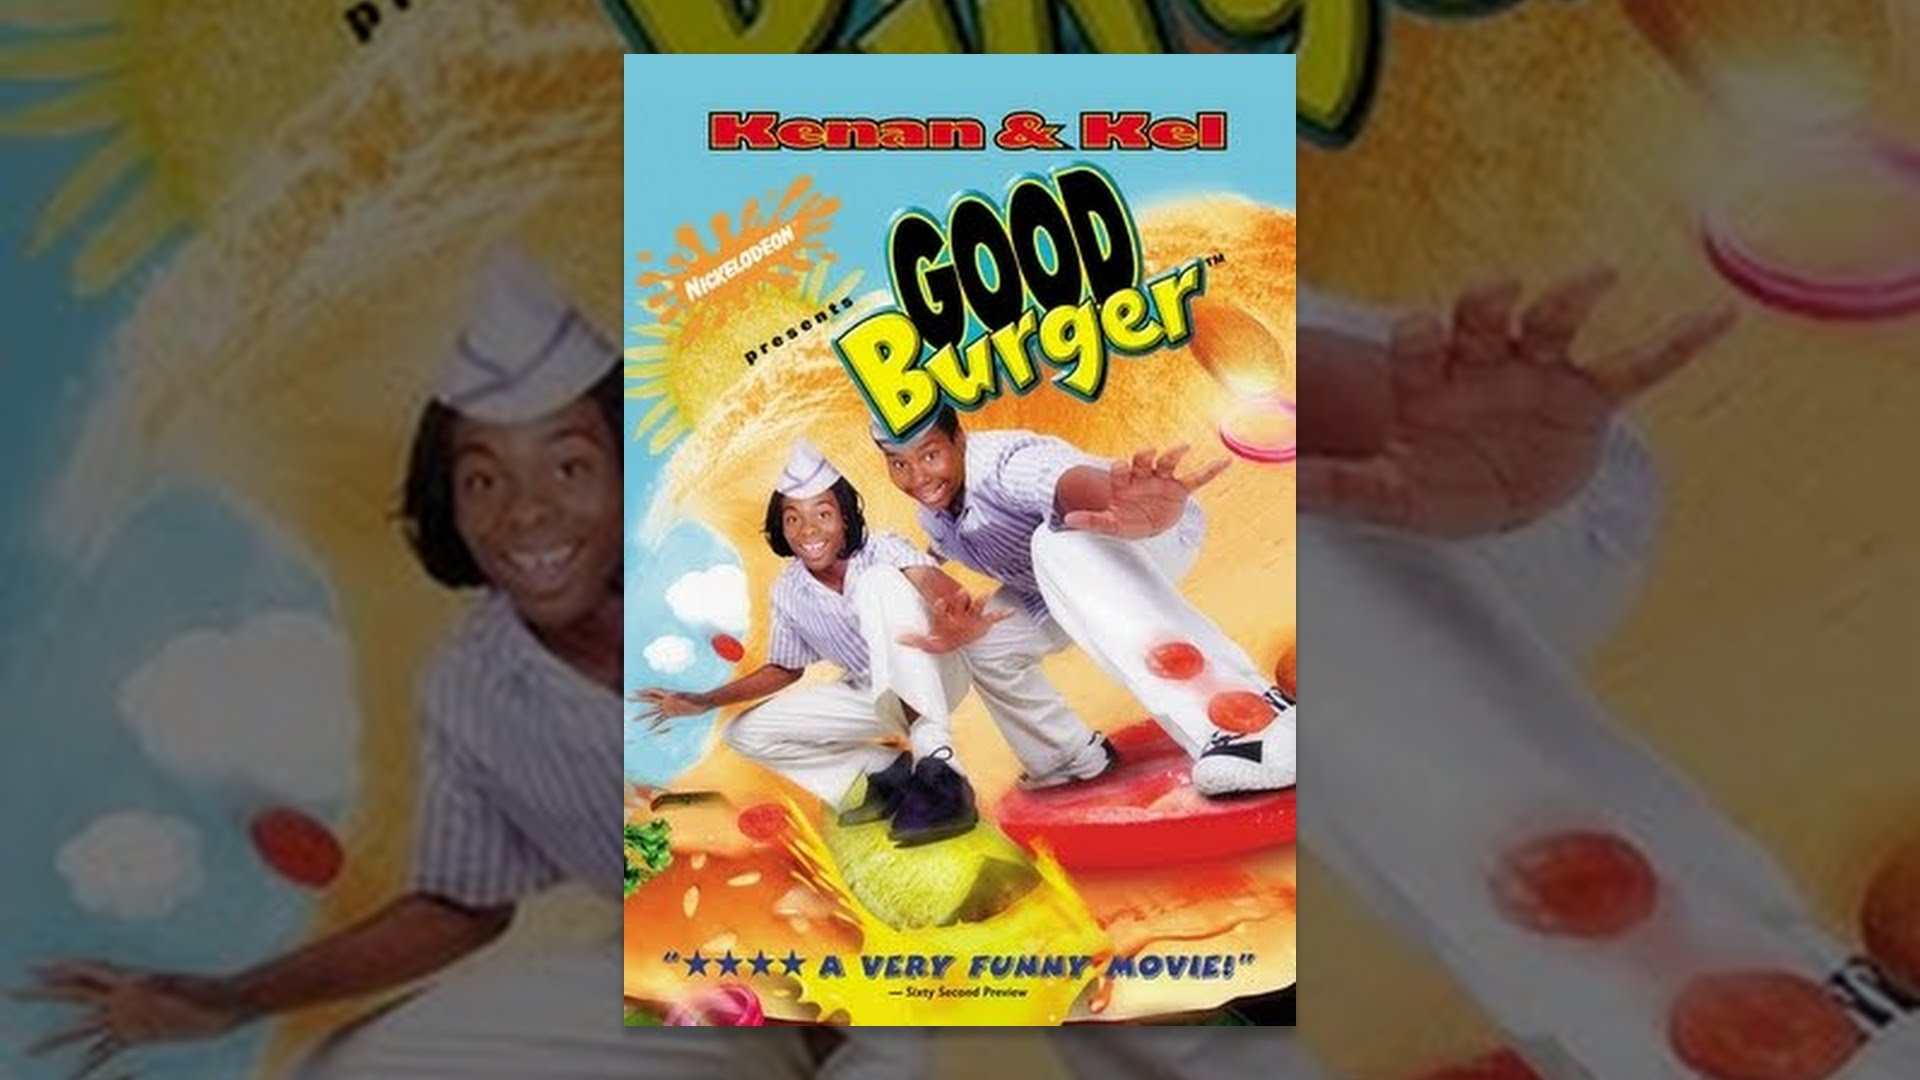 11 Delicious Facts About Good Burger  Mental Floss